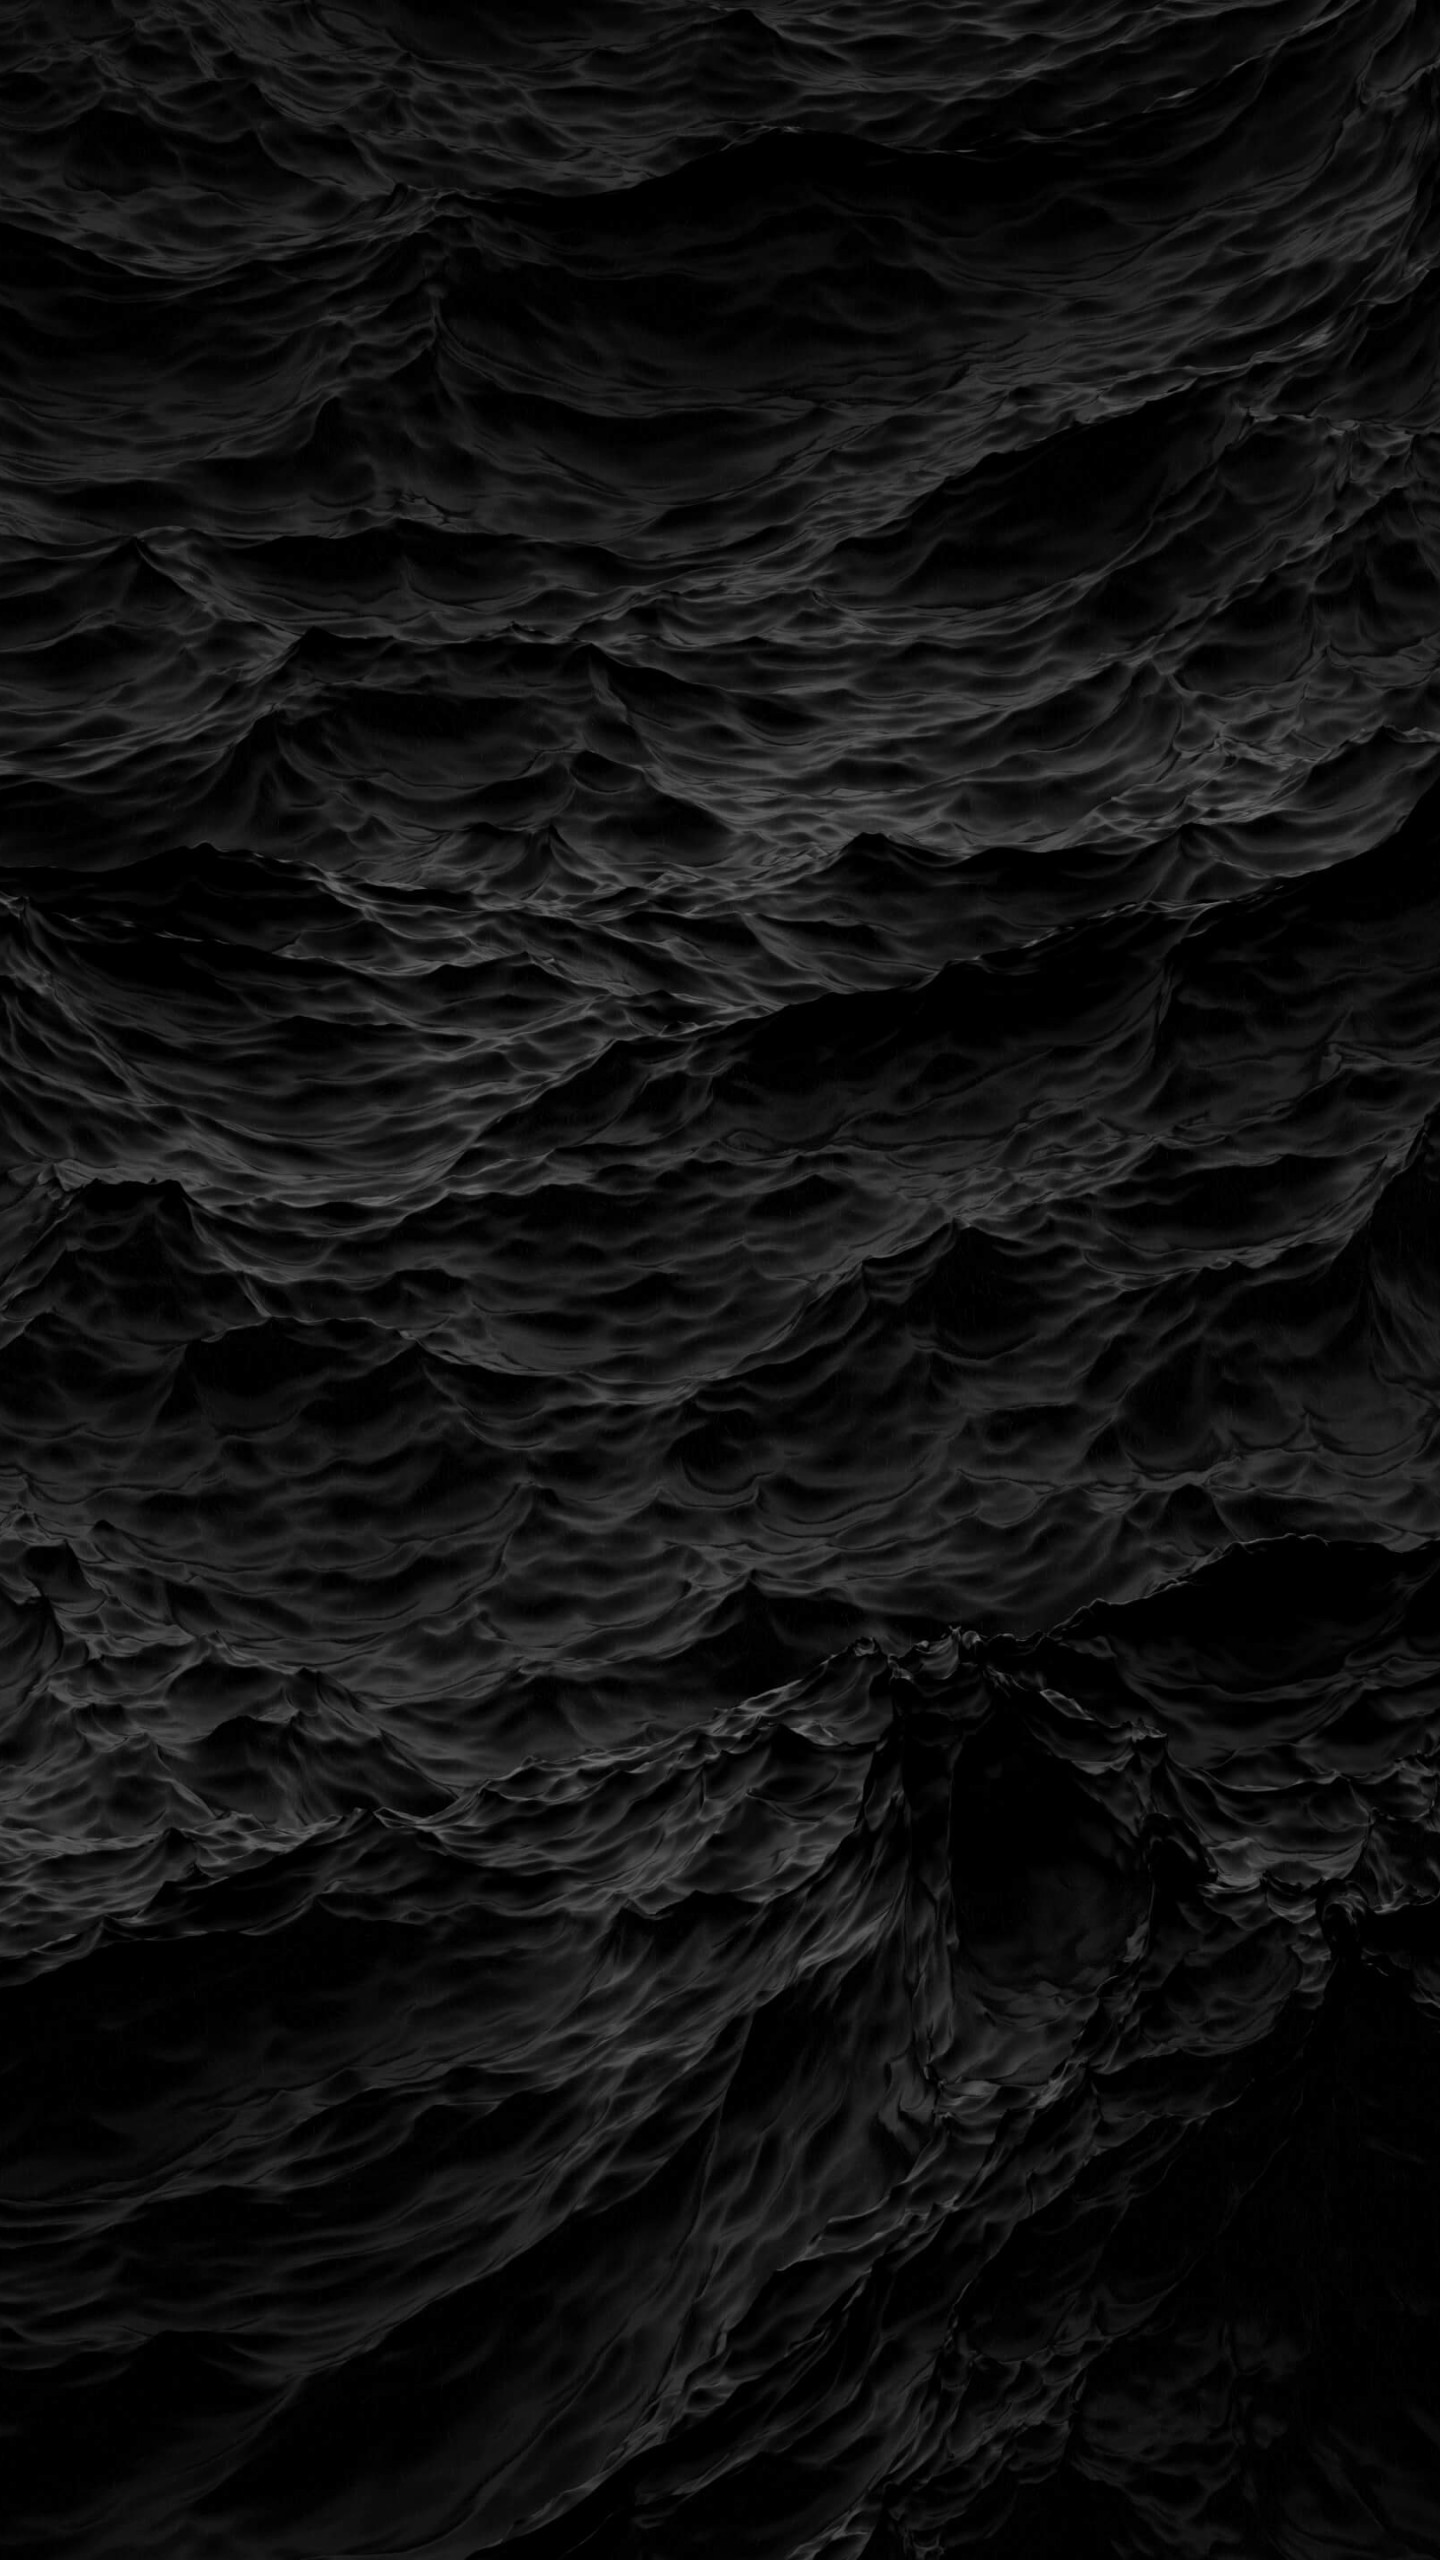 Black Waves Wallpaper for Google Nexus 6P